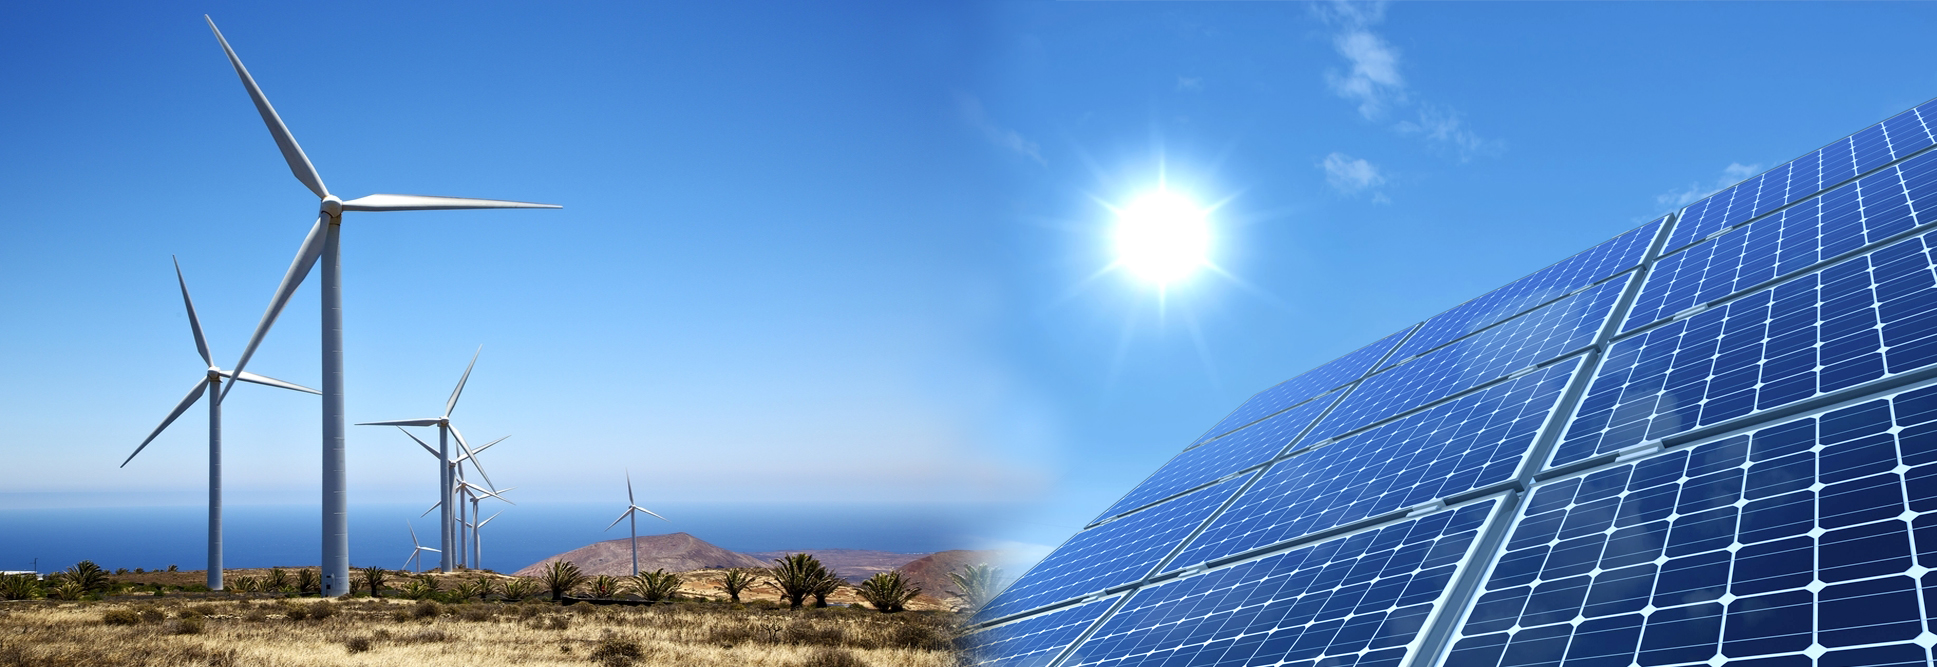 Sustainable Solar and Wind Energy for Generating Electrical Power and Protecting the Environment